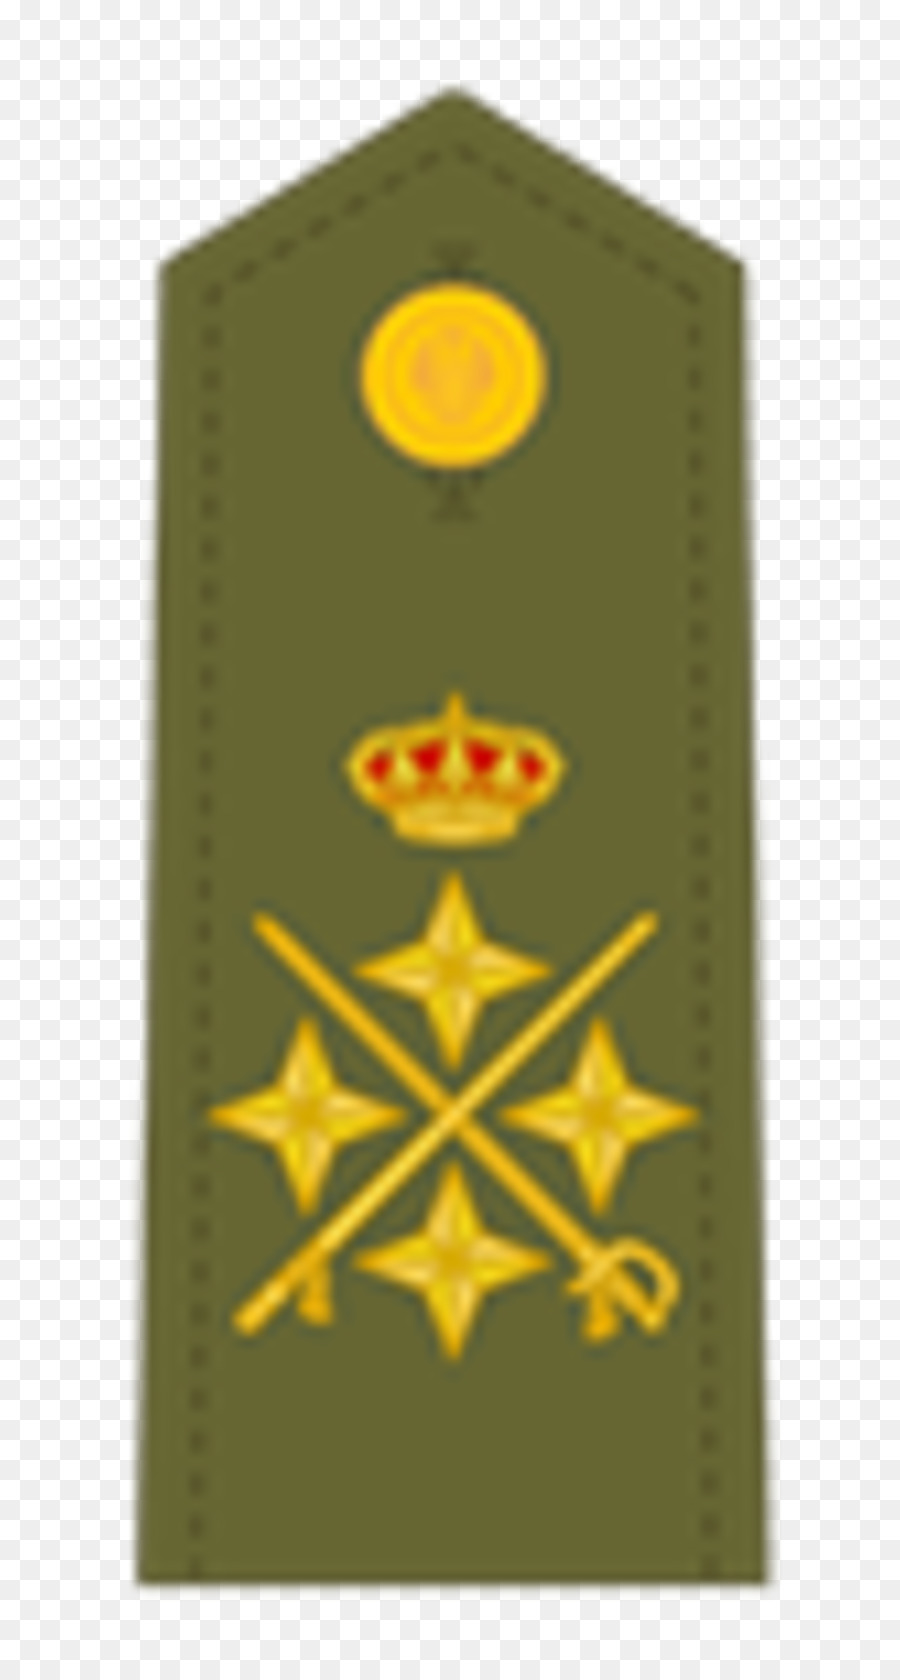 Brigadier General Divisional General Military Rank Major General